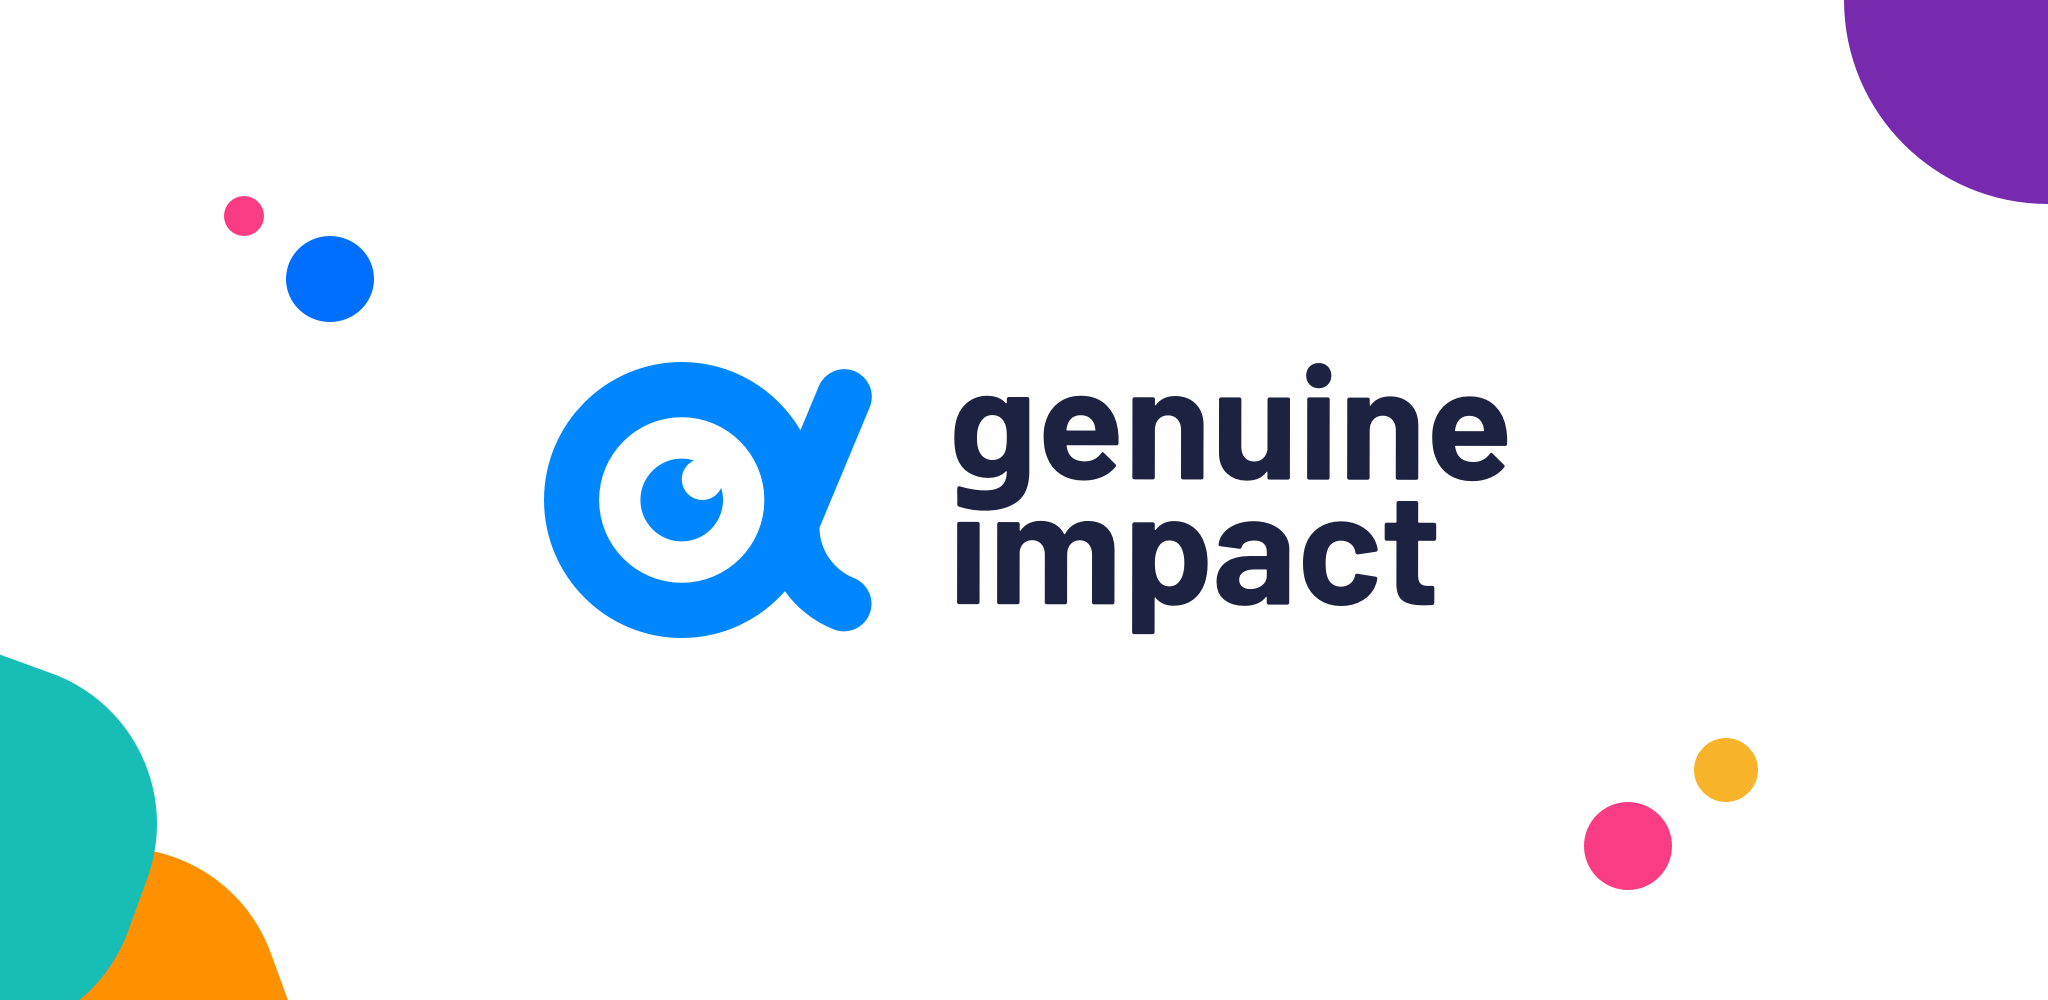 A New Look For Genuine Impact